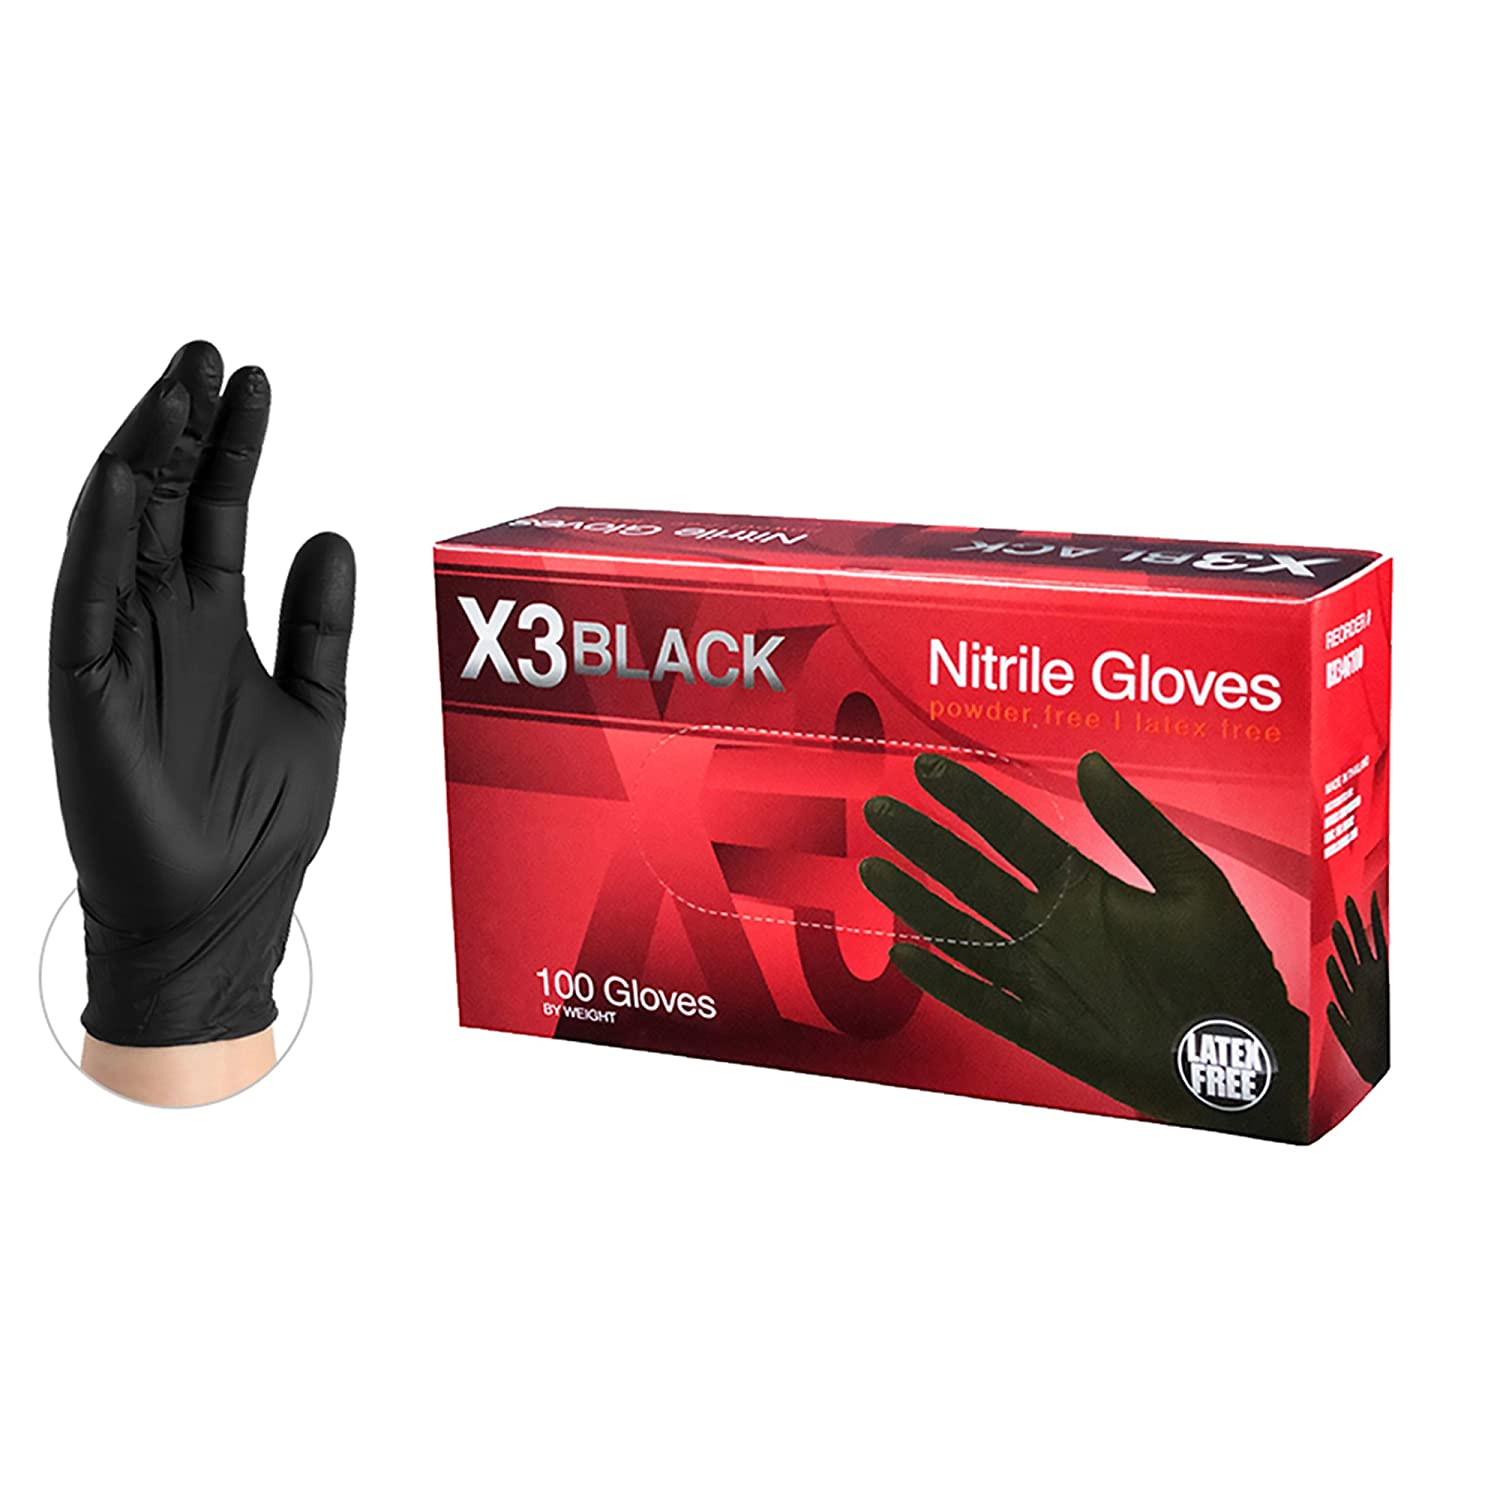 B01I527FK2 X3 Industrial Black Nitrile Gloves - 3 mil, Latex Free, Powder Free, Textured, Disposable, XXLarge, BX349100-BX, Box of 100 71WA30VKD4L